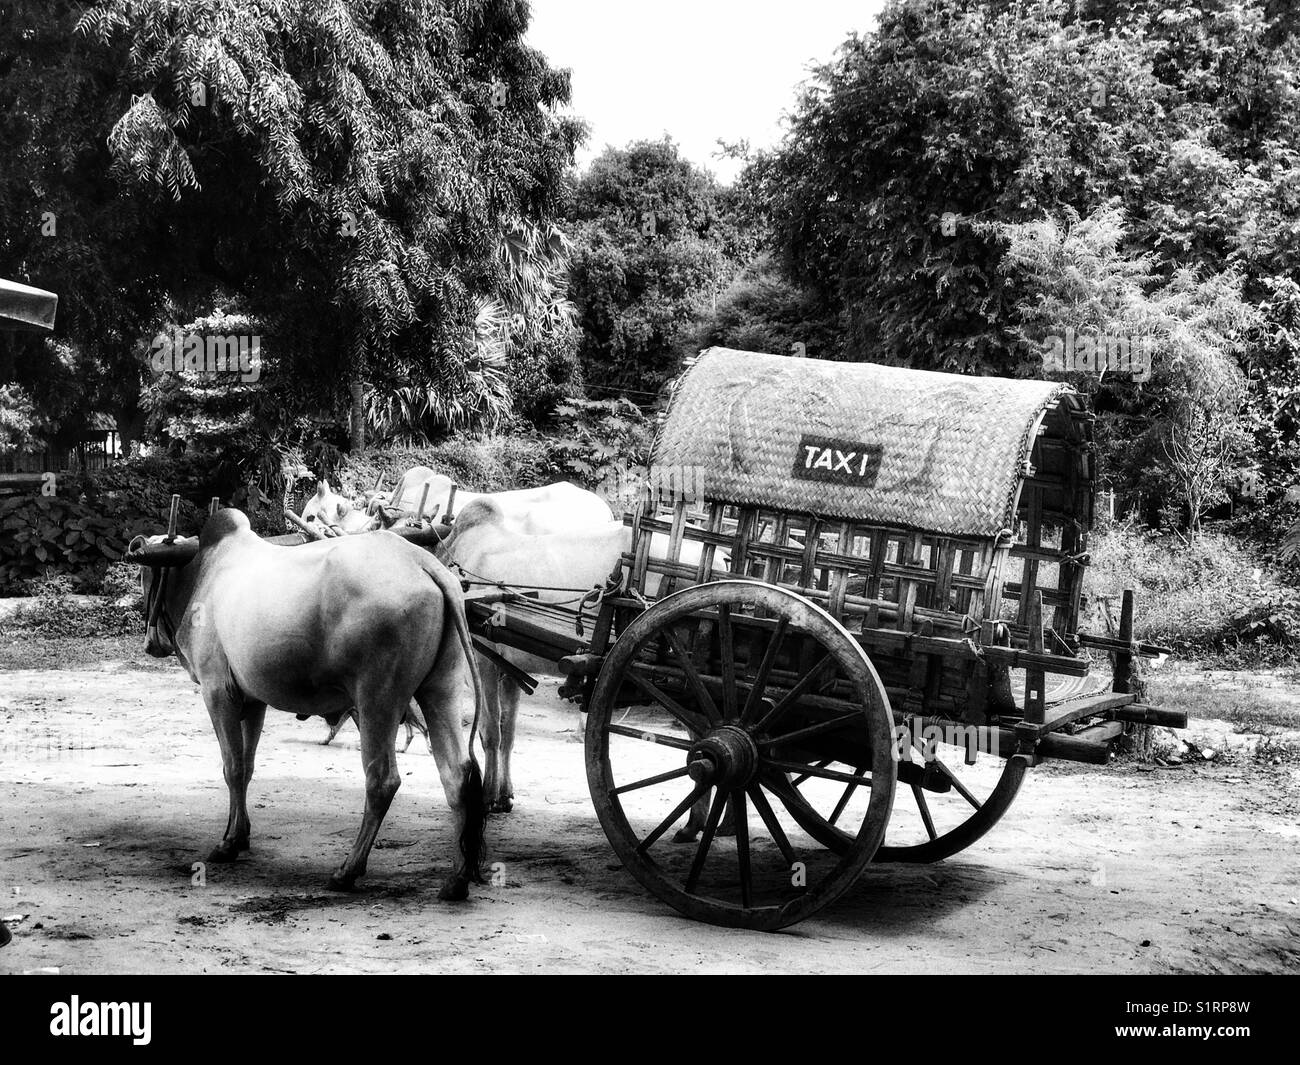 Oxen Taxi in Mandalay, Myanmar - Stock Image